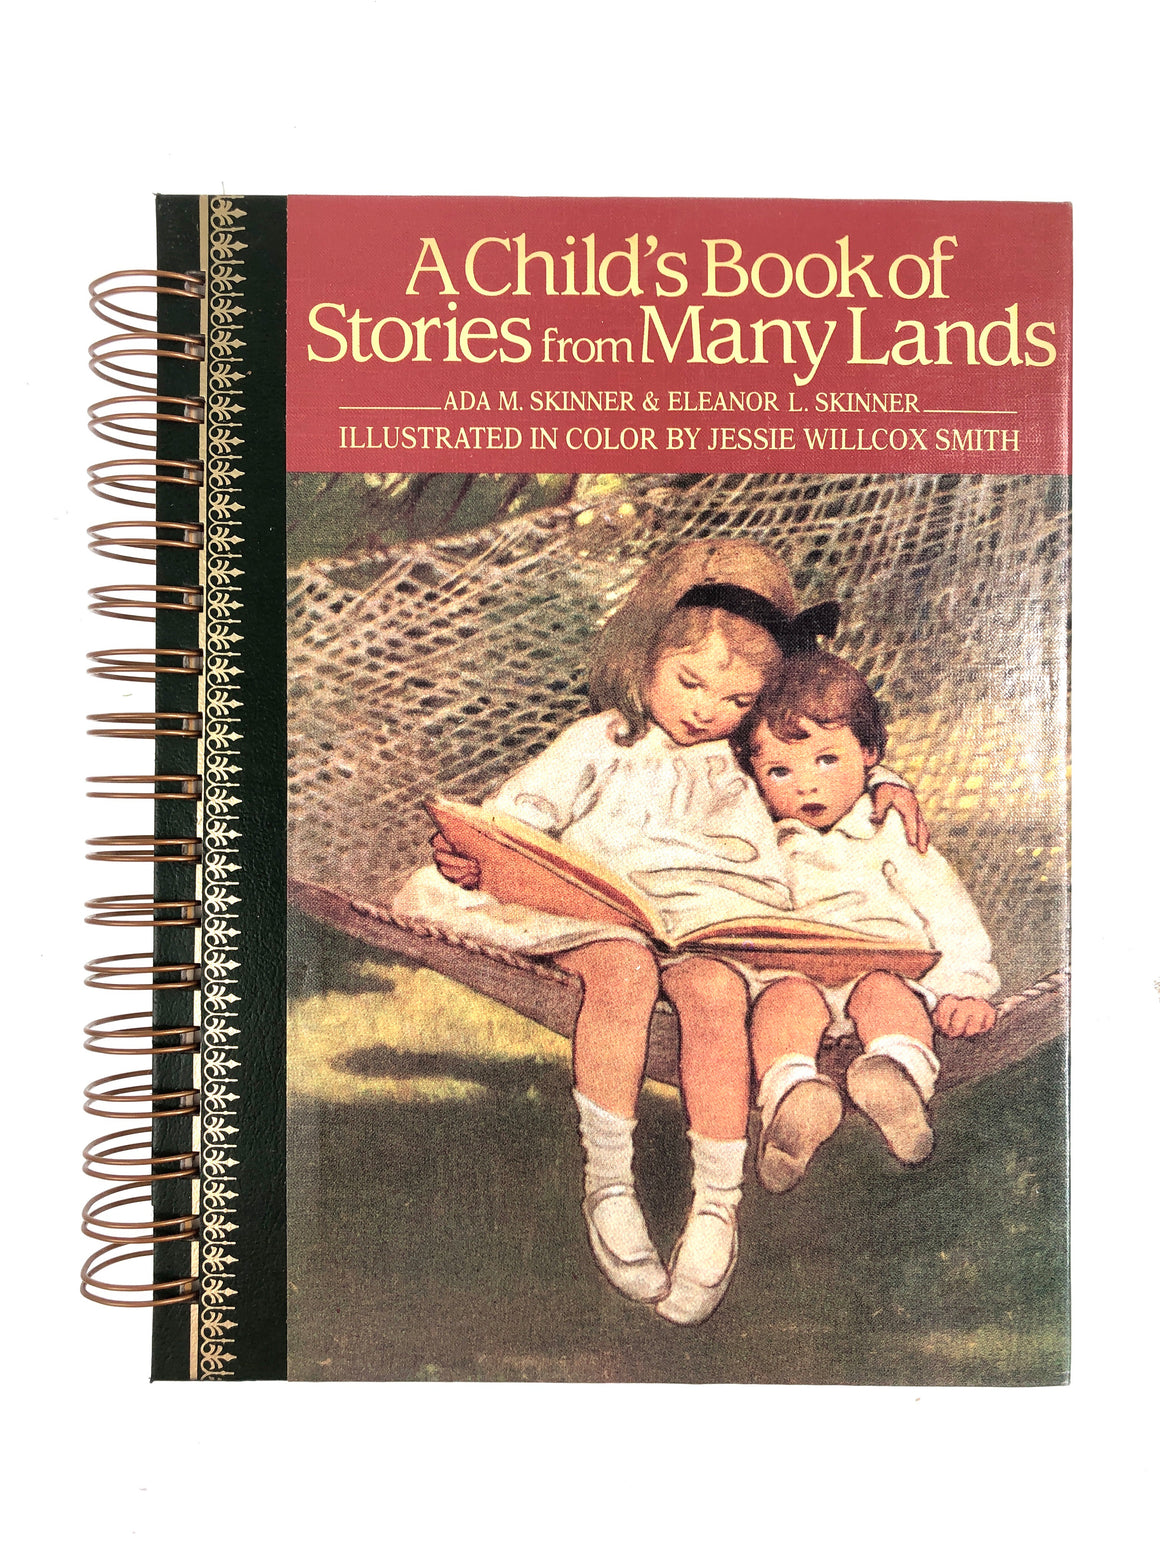 A Child's Book of Stories from Many Lands-Red Barn Collections